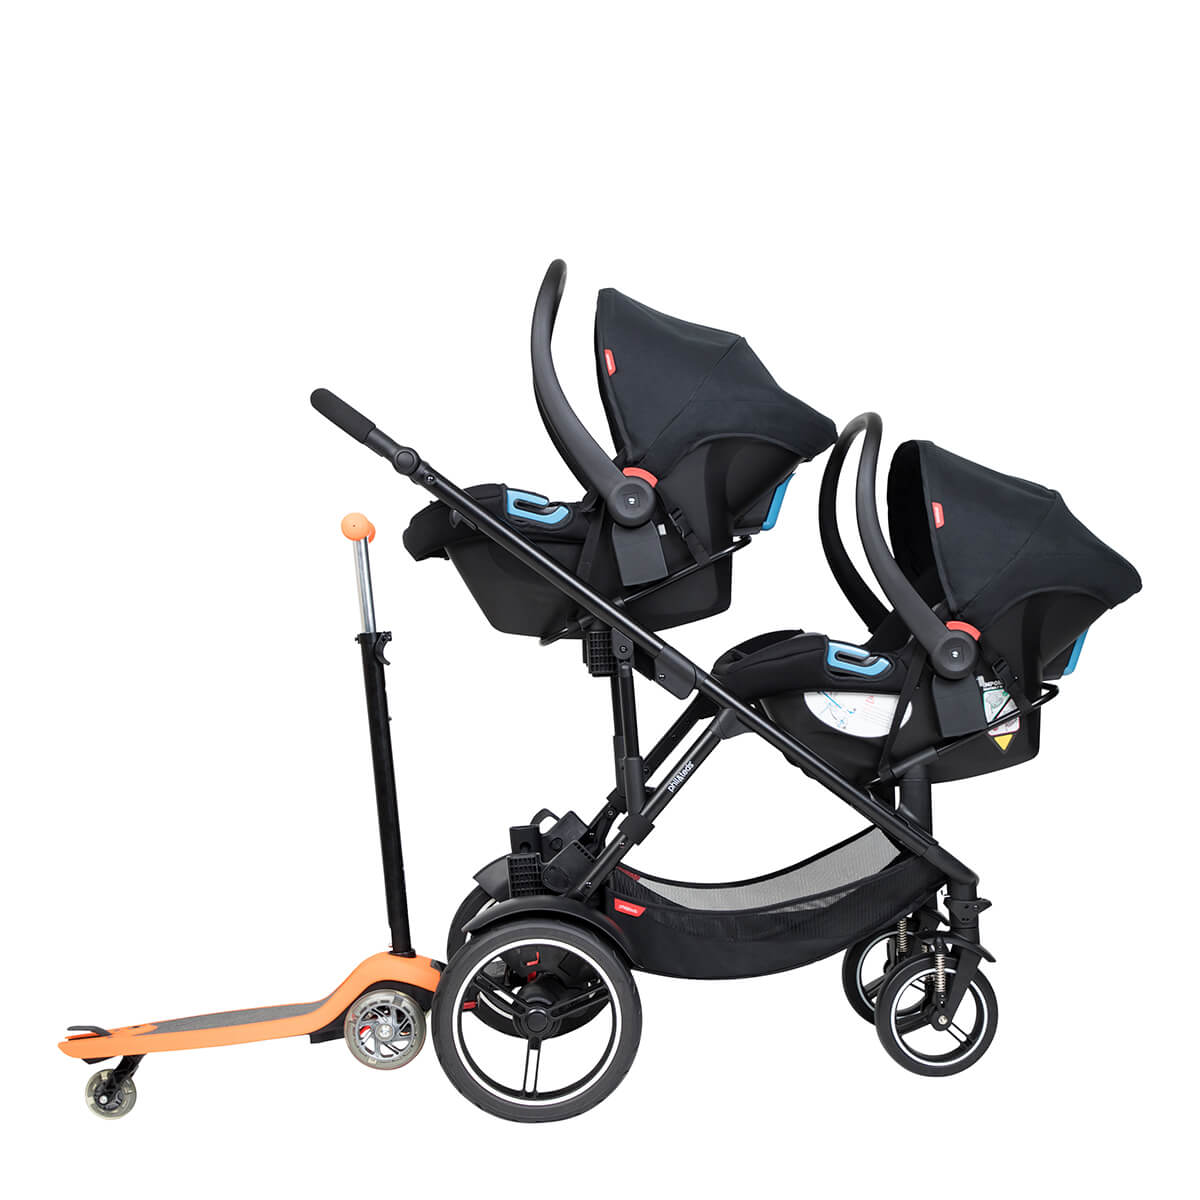 https://cdn.accentuate.io/4509867311201/19794908643498/philteds-voyager-buggy-with-double-travel-systems-and-freerider-stroller-board-in-the-rear-v1626485388724.jpg?1200x1200